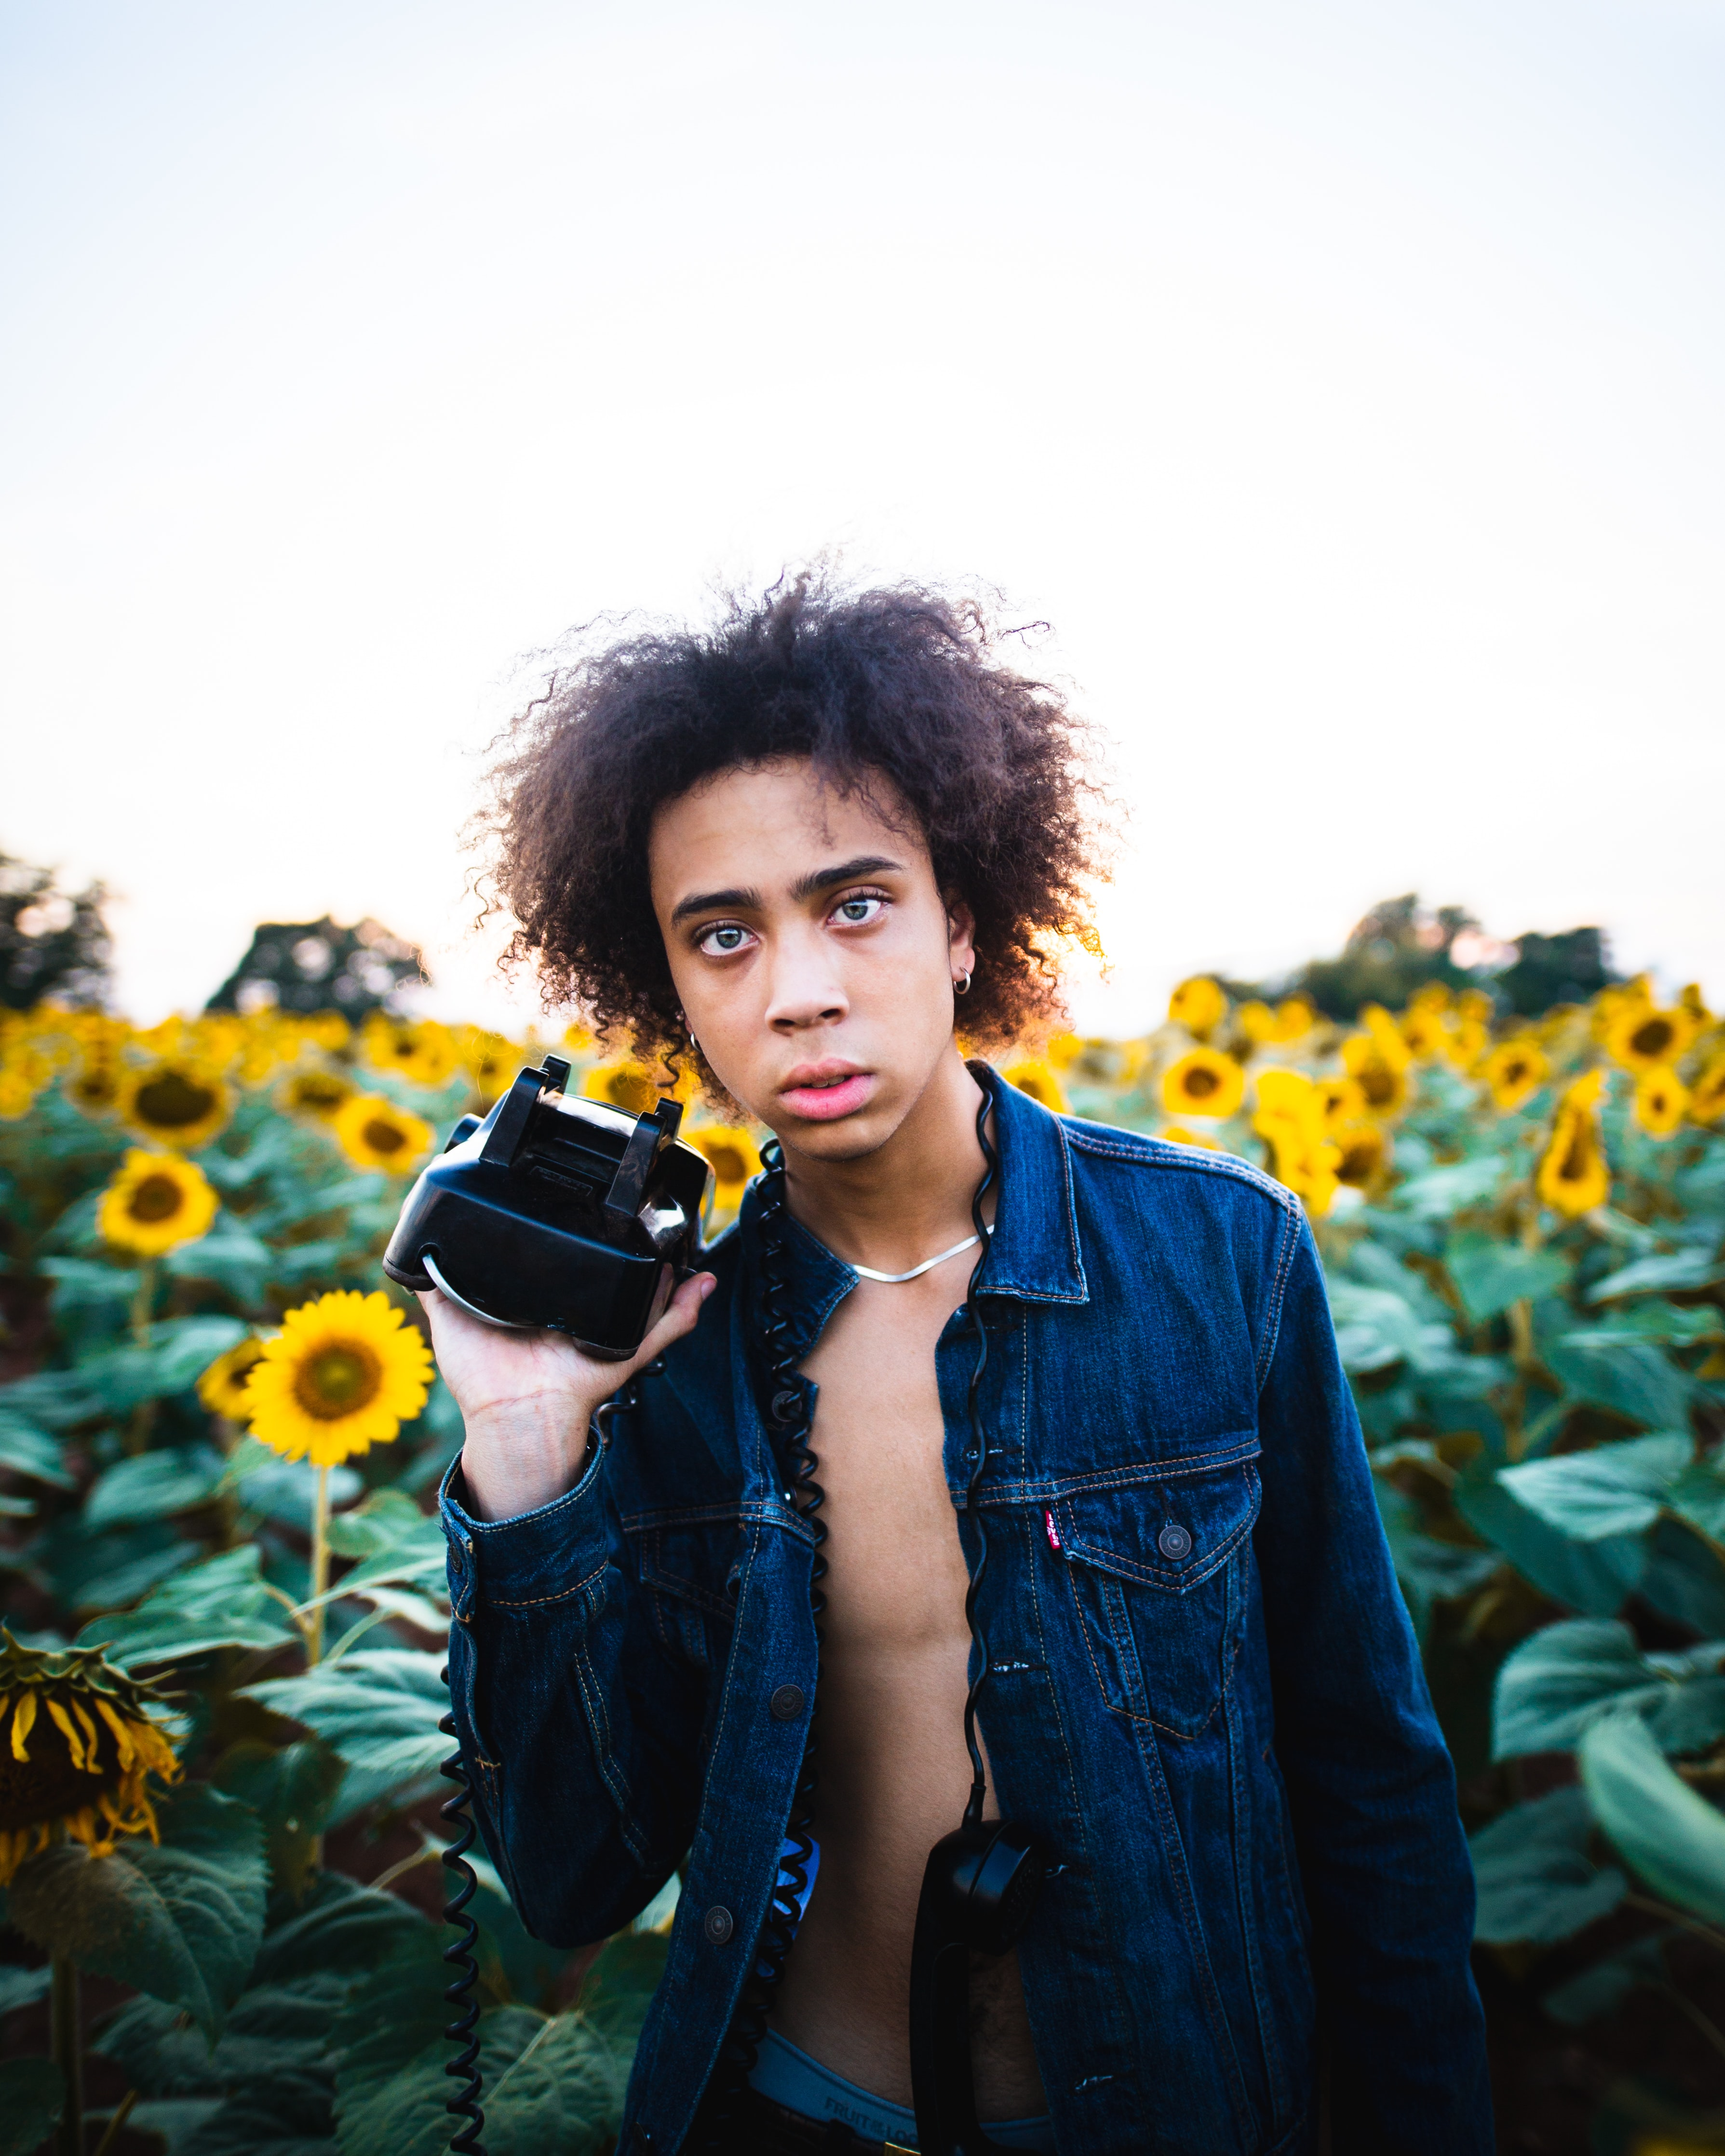 man holding black and white VR headset in front of sunflower meadow